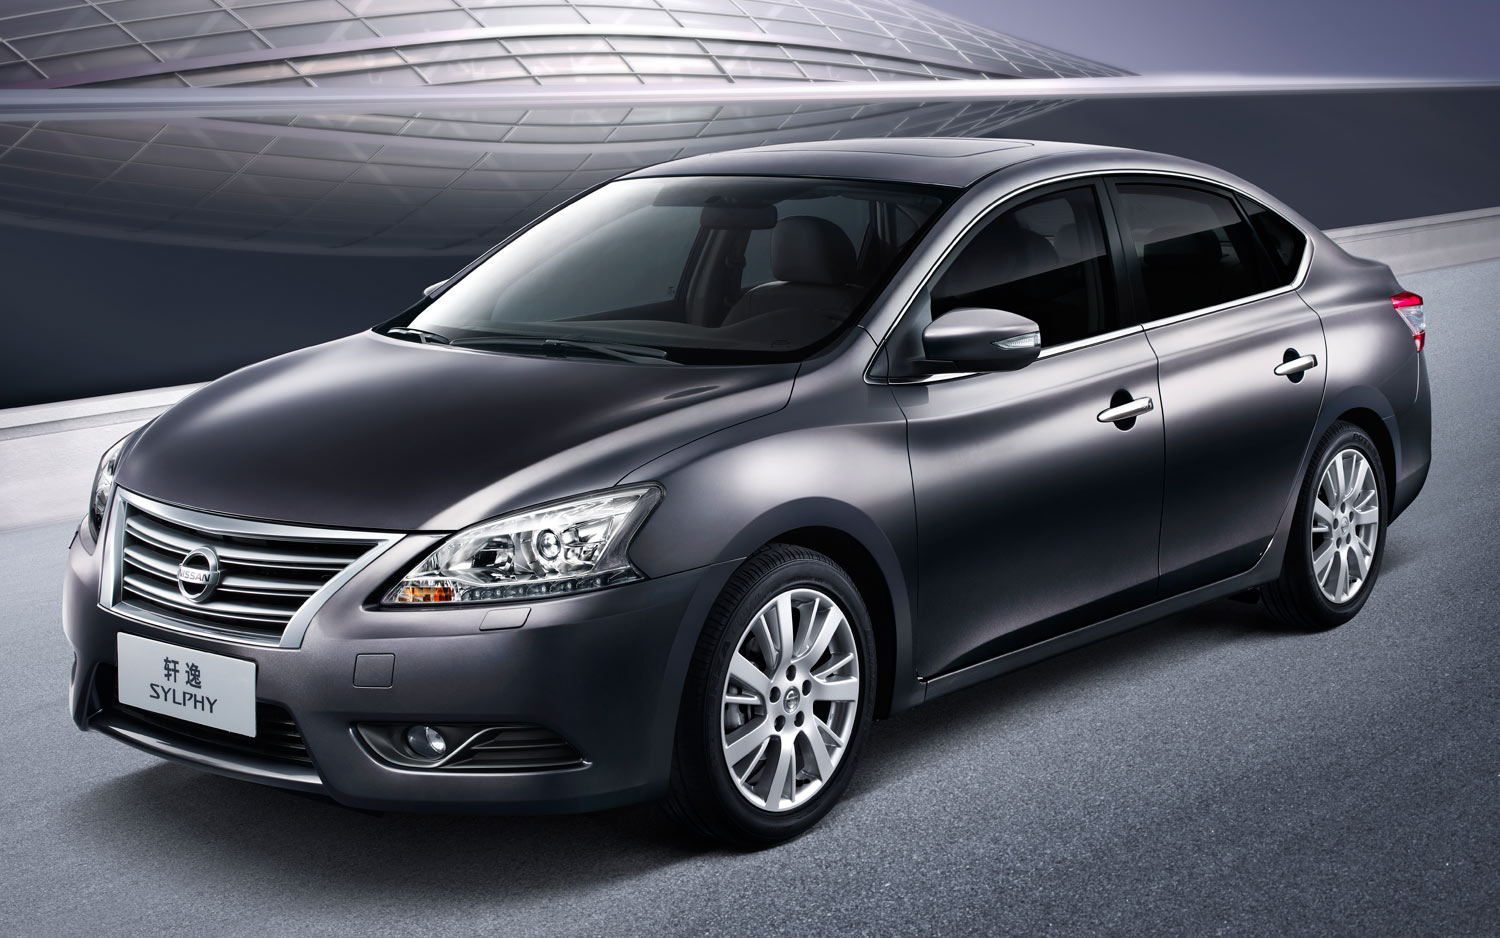 Nissan Sylphy Front Three Quarter View1